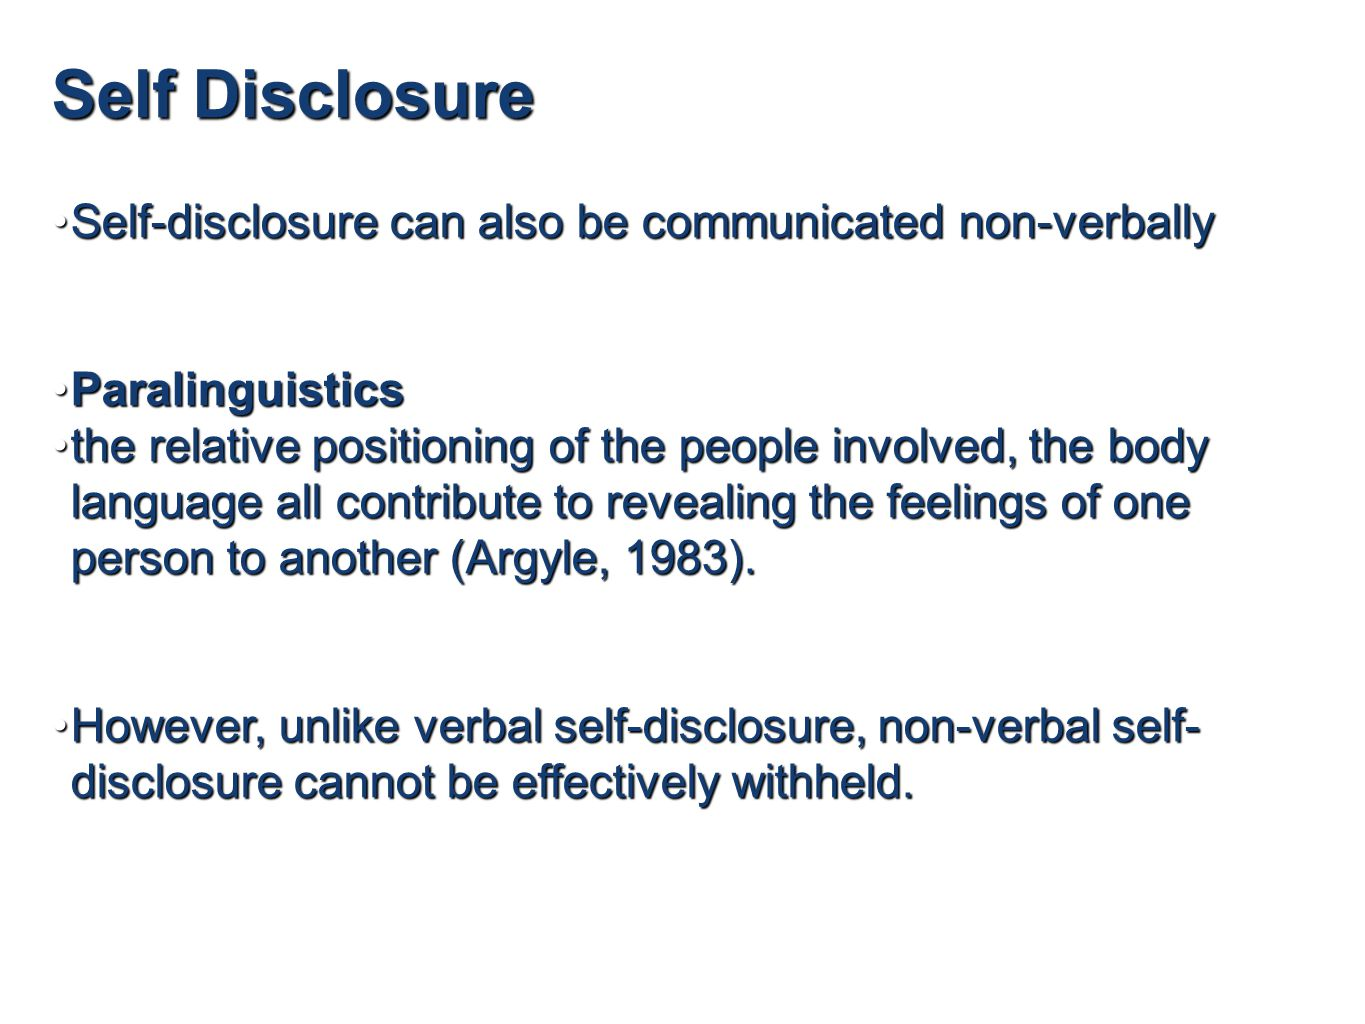 Self Disclosure Self-disclosure can also be communicated non-verballySelf-disclosure can also be communicated non-verbally ParalinguisticsParalinguistics the relative positioning of the people involved, the body language all contribute to revealing the feelings of one person to another (Argyle, 1983).the relative positioning of the people involved, the body language all contribute to revealing the feelings of one person to another (Argyle, 1983).